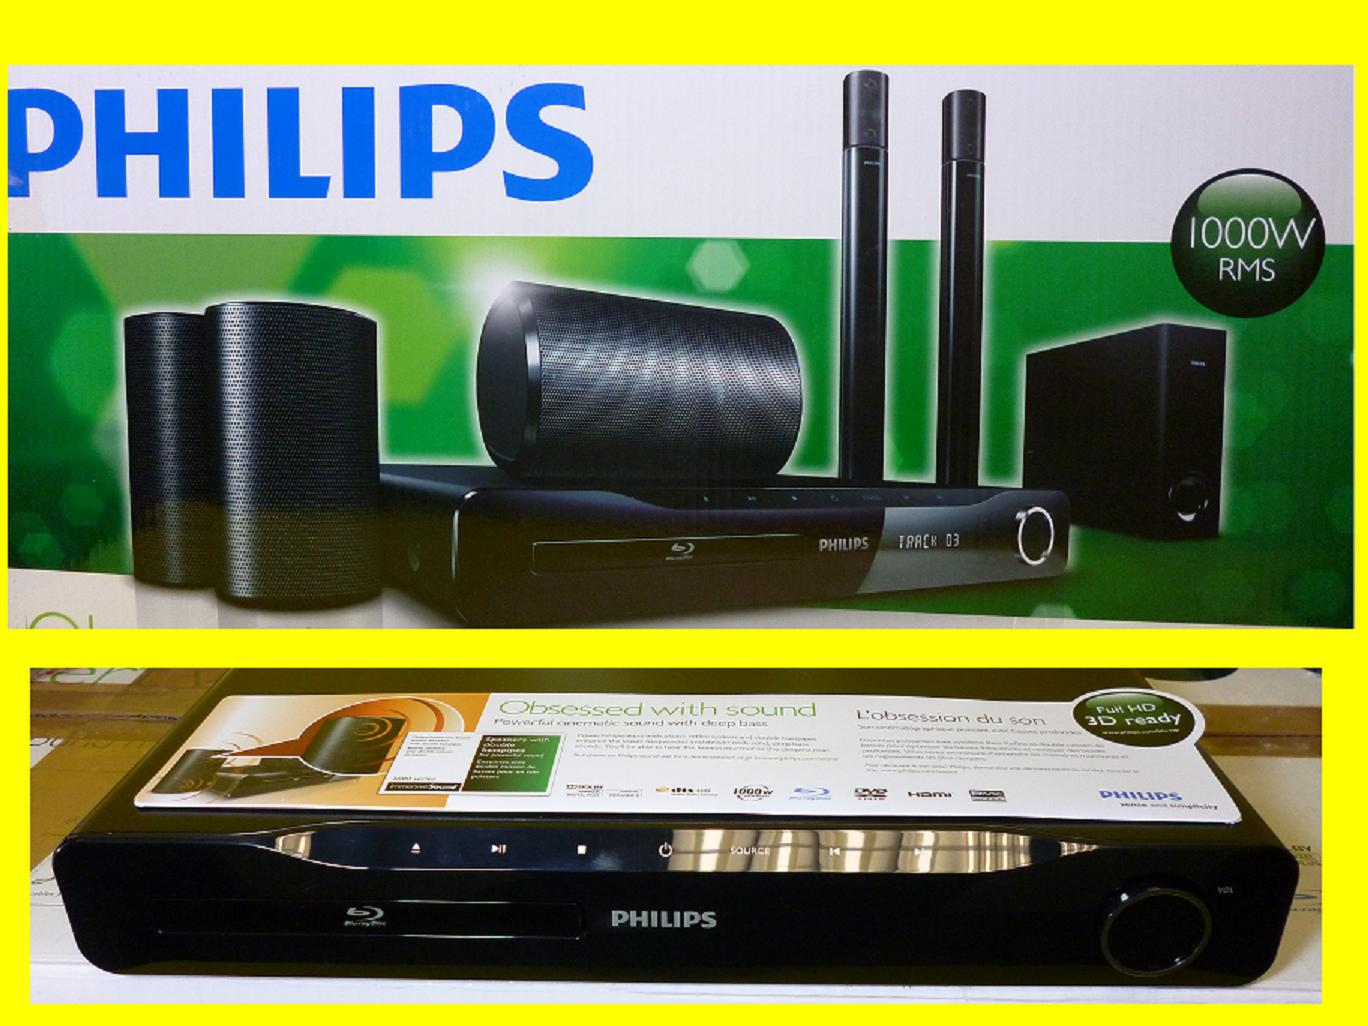 heimkinosystem philips hts3580 12 heimkino system. Black Bedroom Furniture Sets. Home Design Ideas